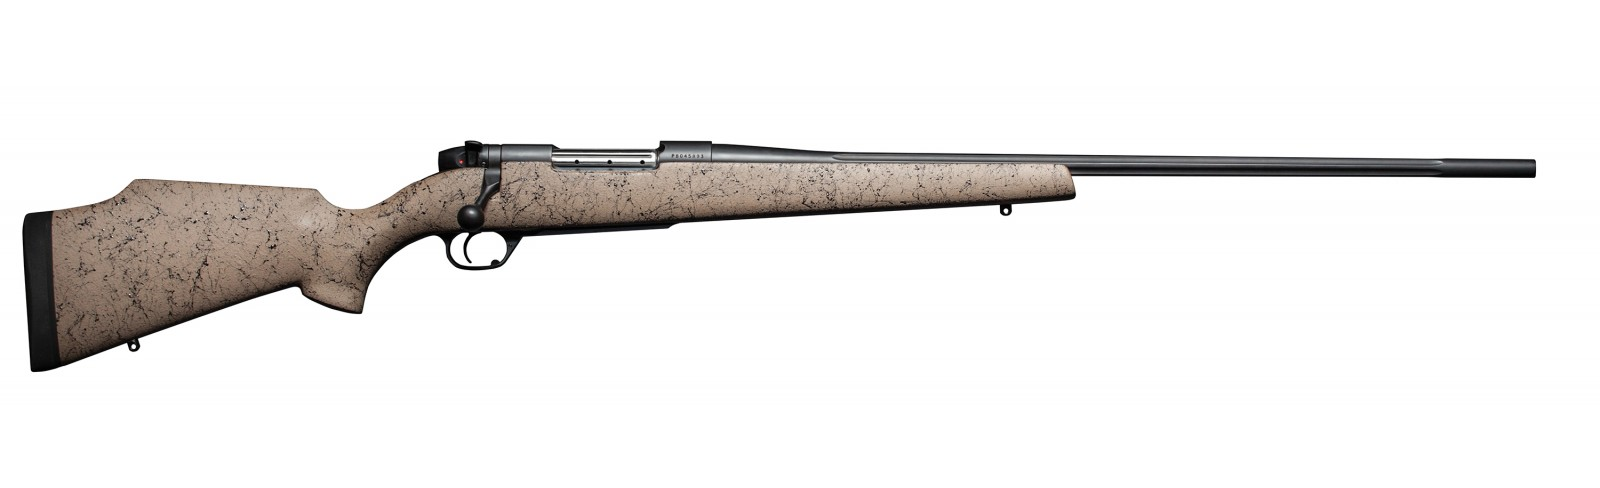 Weatherby Mark V Ultra Lightweight, rifle, weatherby, mountain, hunting, lightweight, mountain hunting rifle